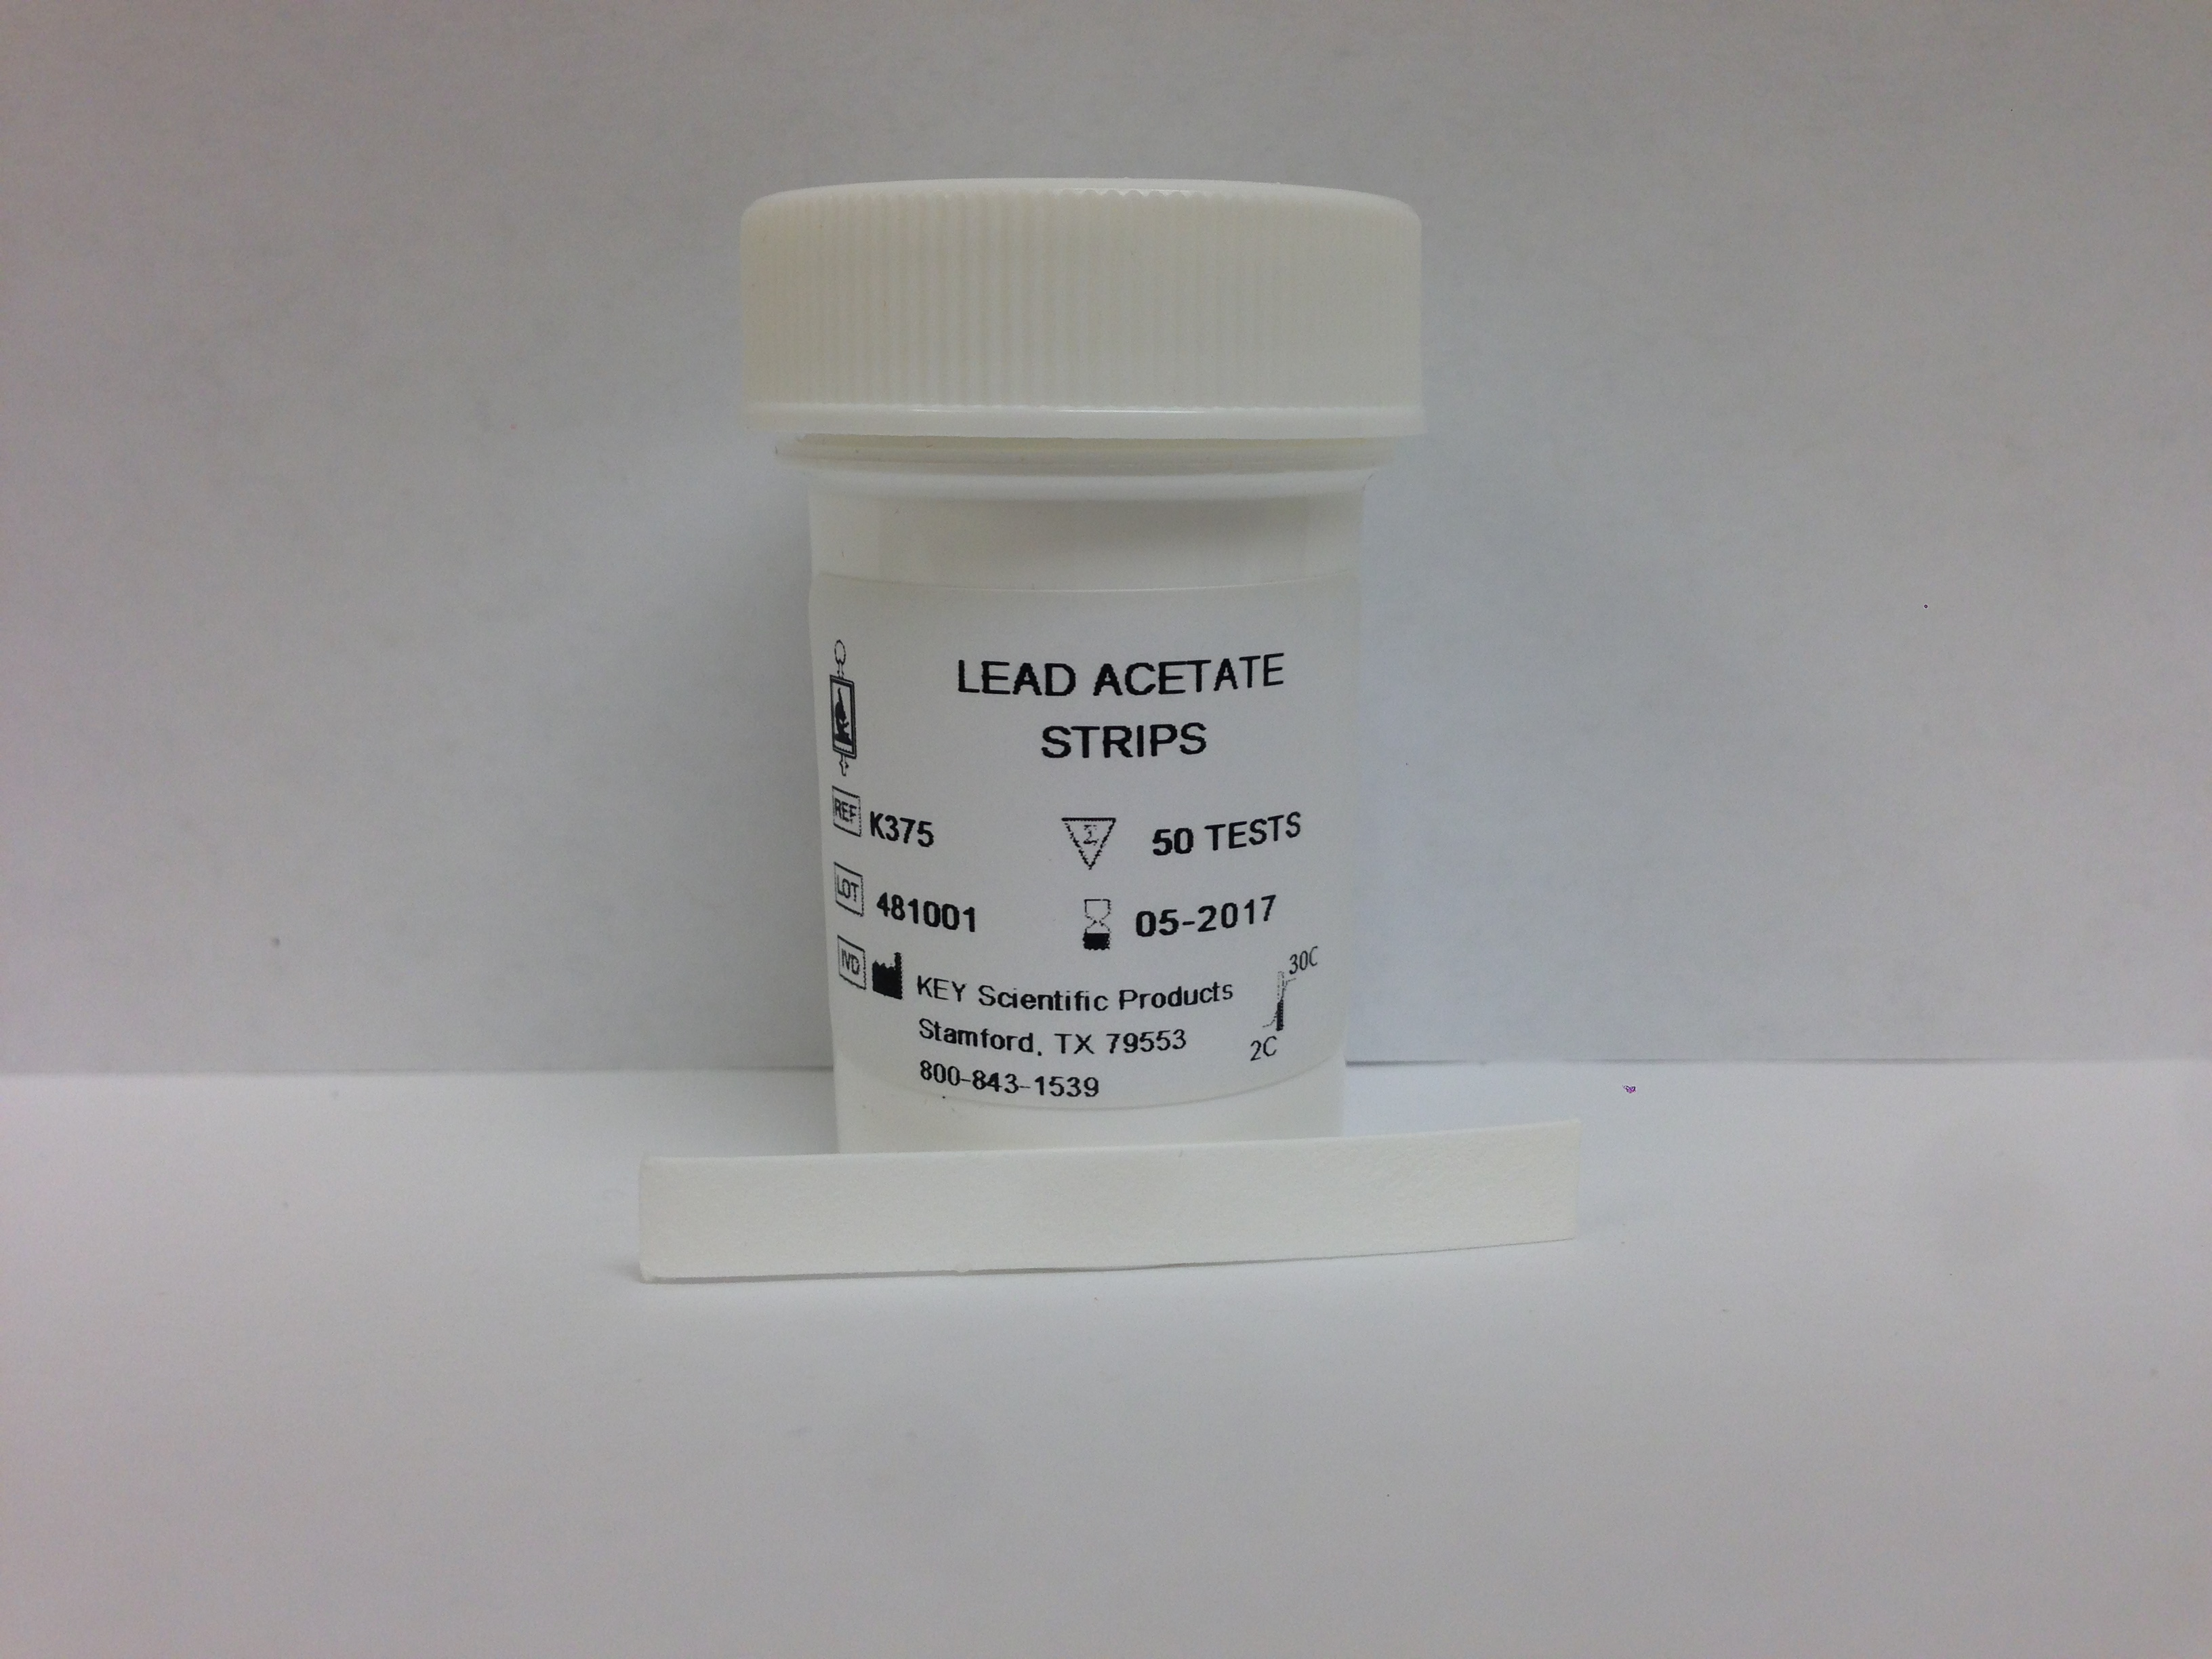 LEAD ACETATE STRIPS